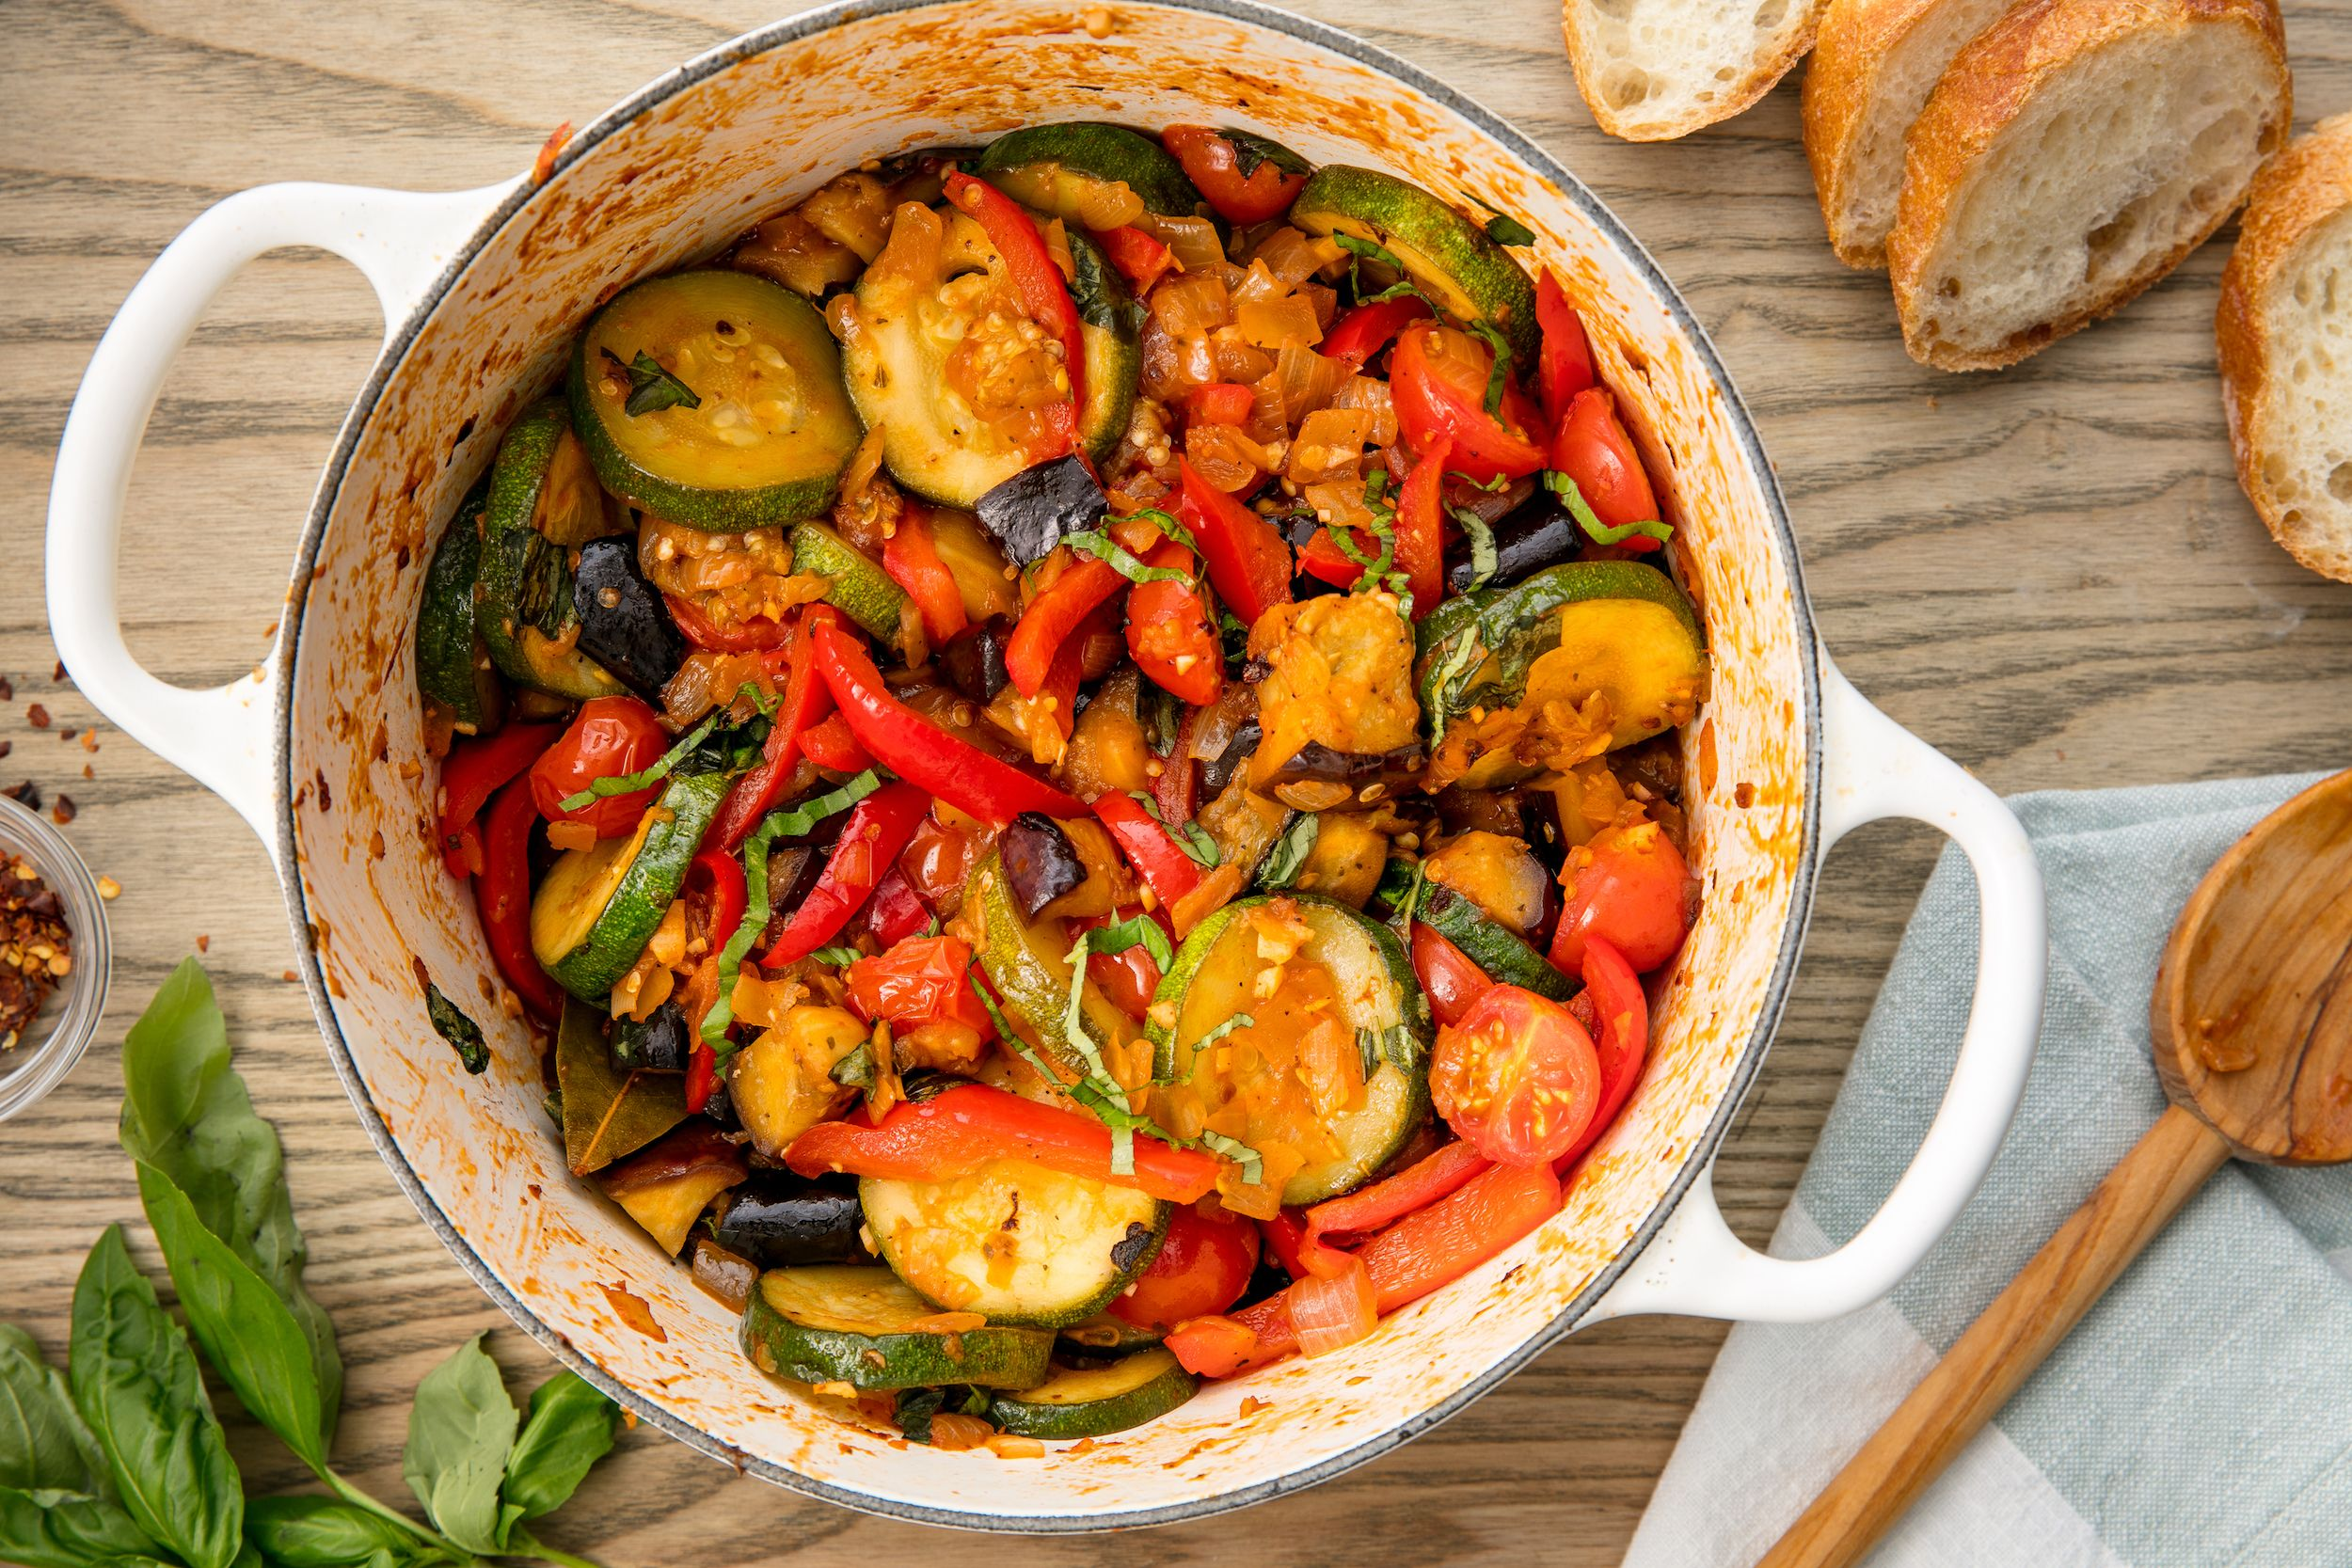 Easy Traditional Ratatouille Recipe How To Make Ratatouille